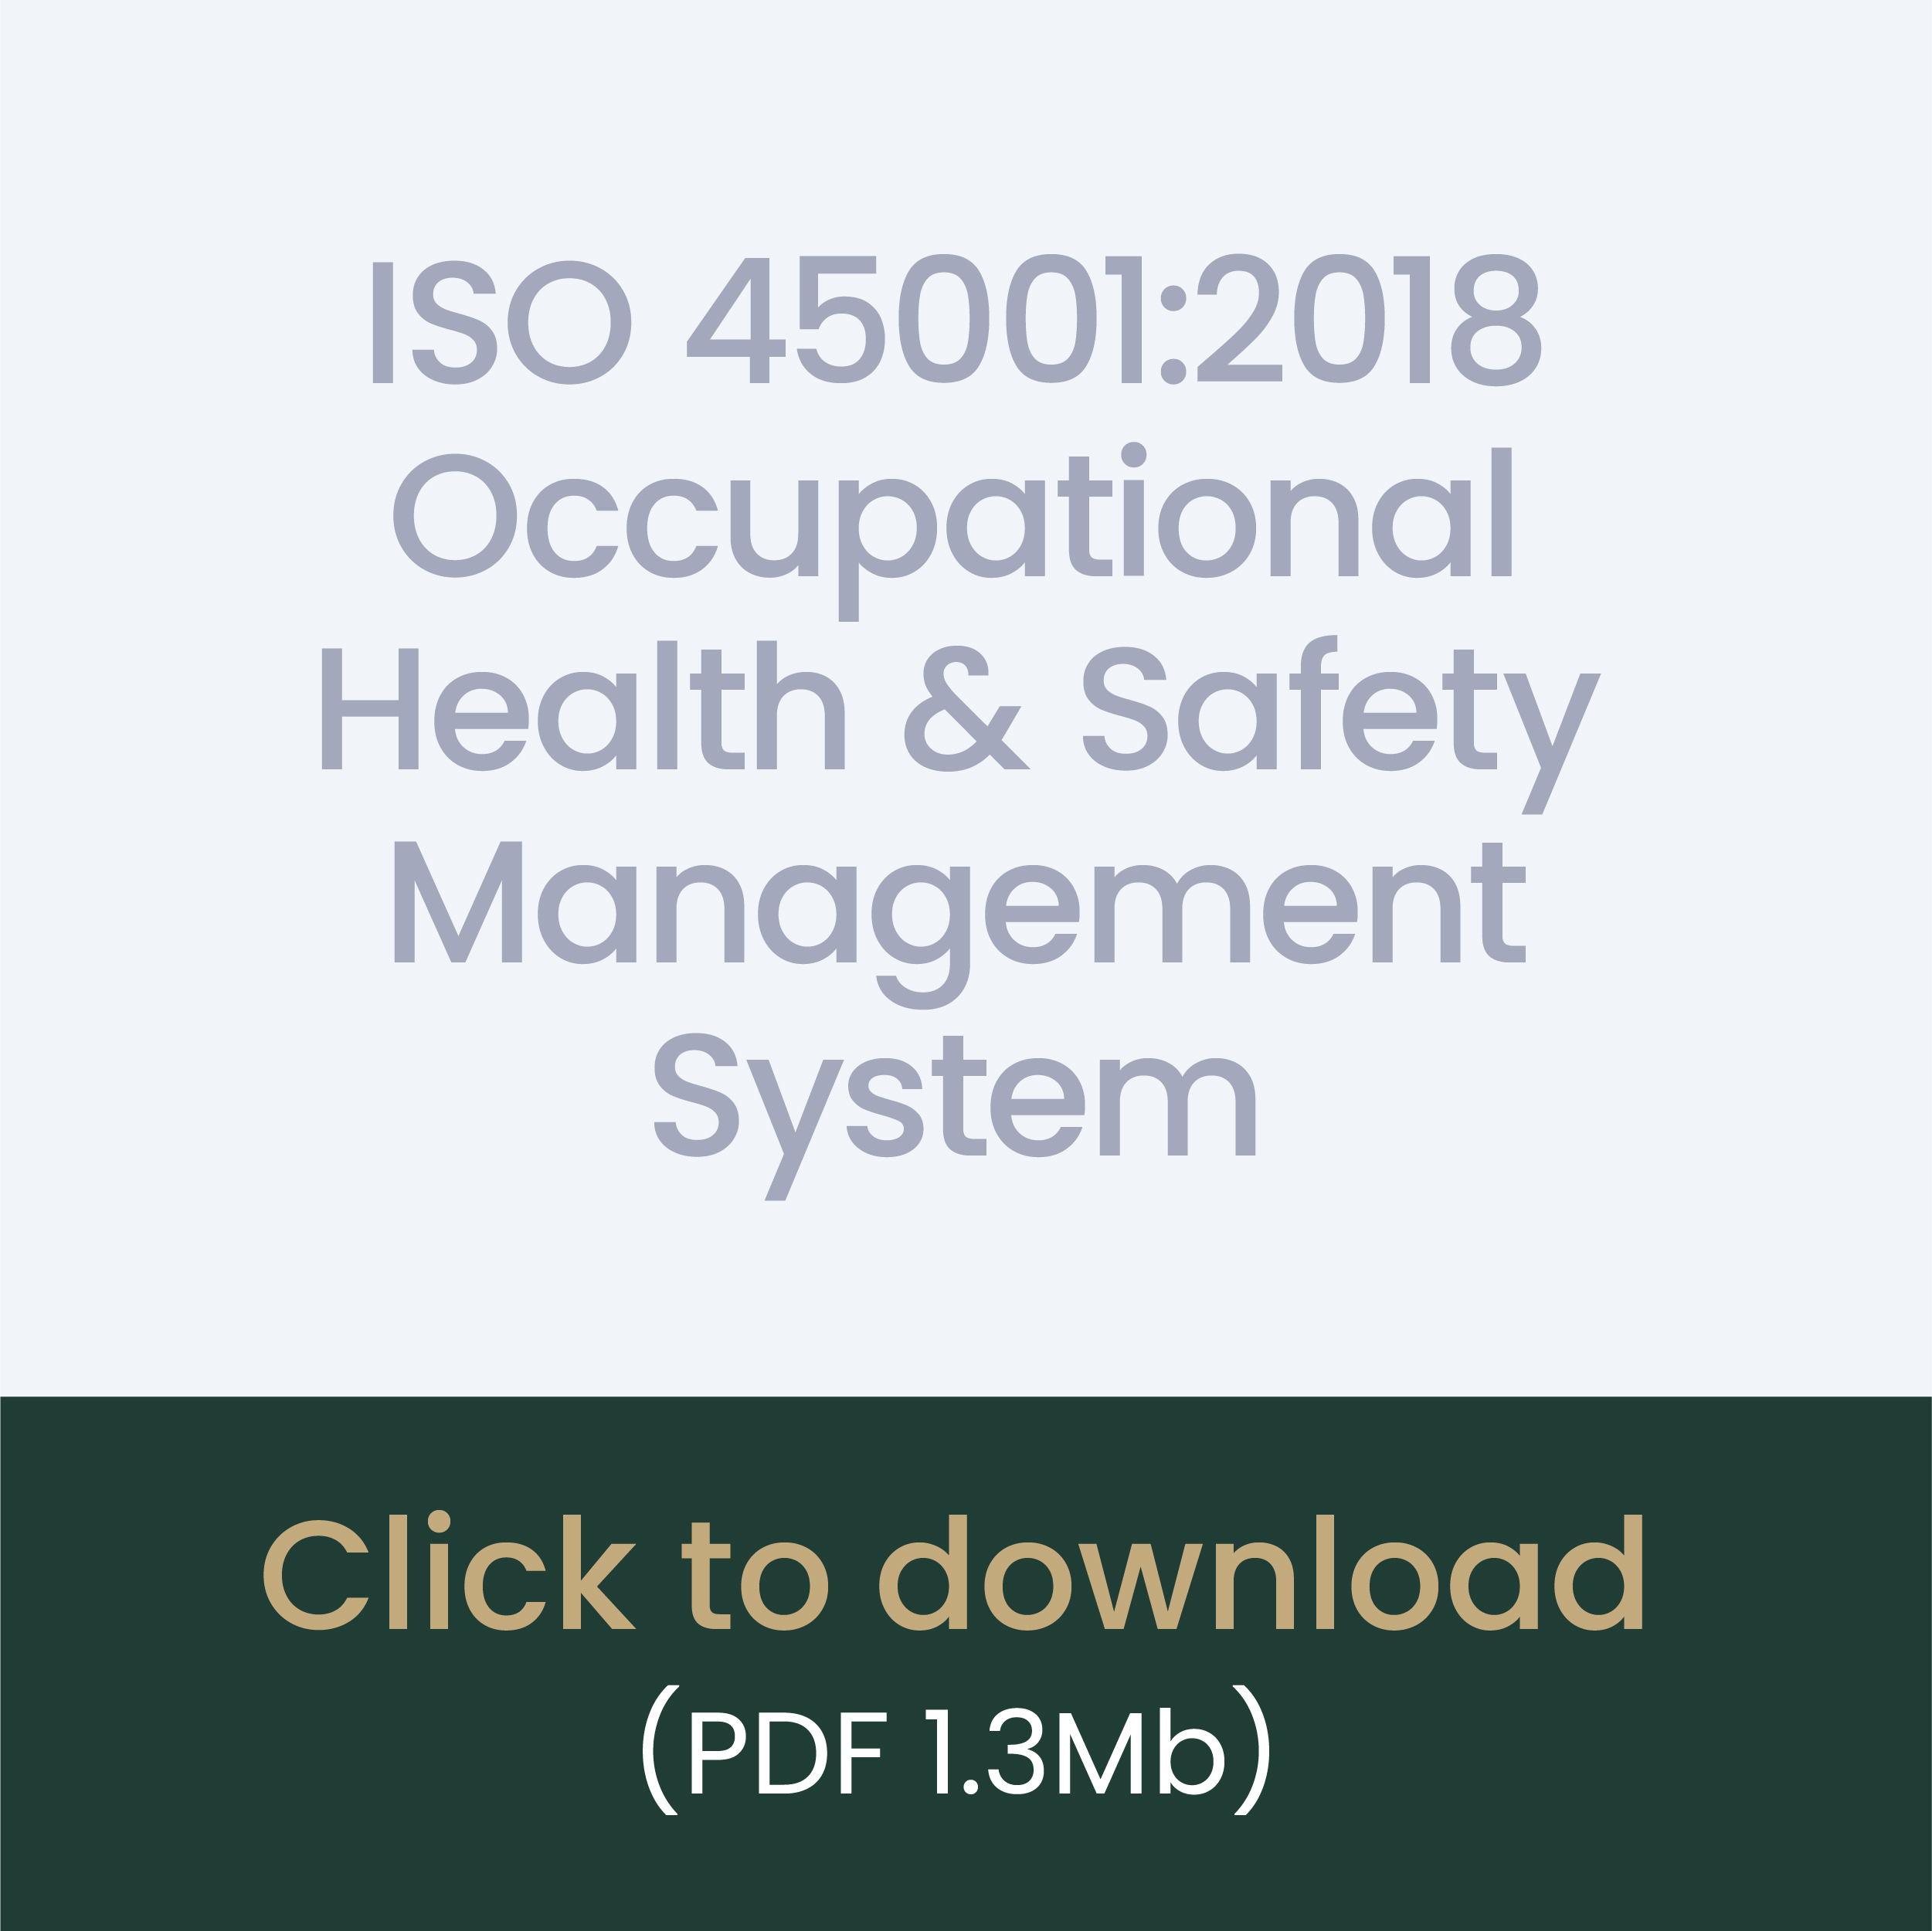 ISO 45001:2018 Occupational Health & Safety Management System download link